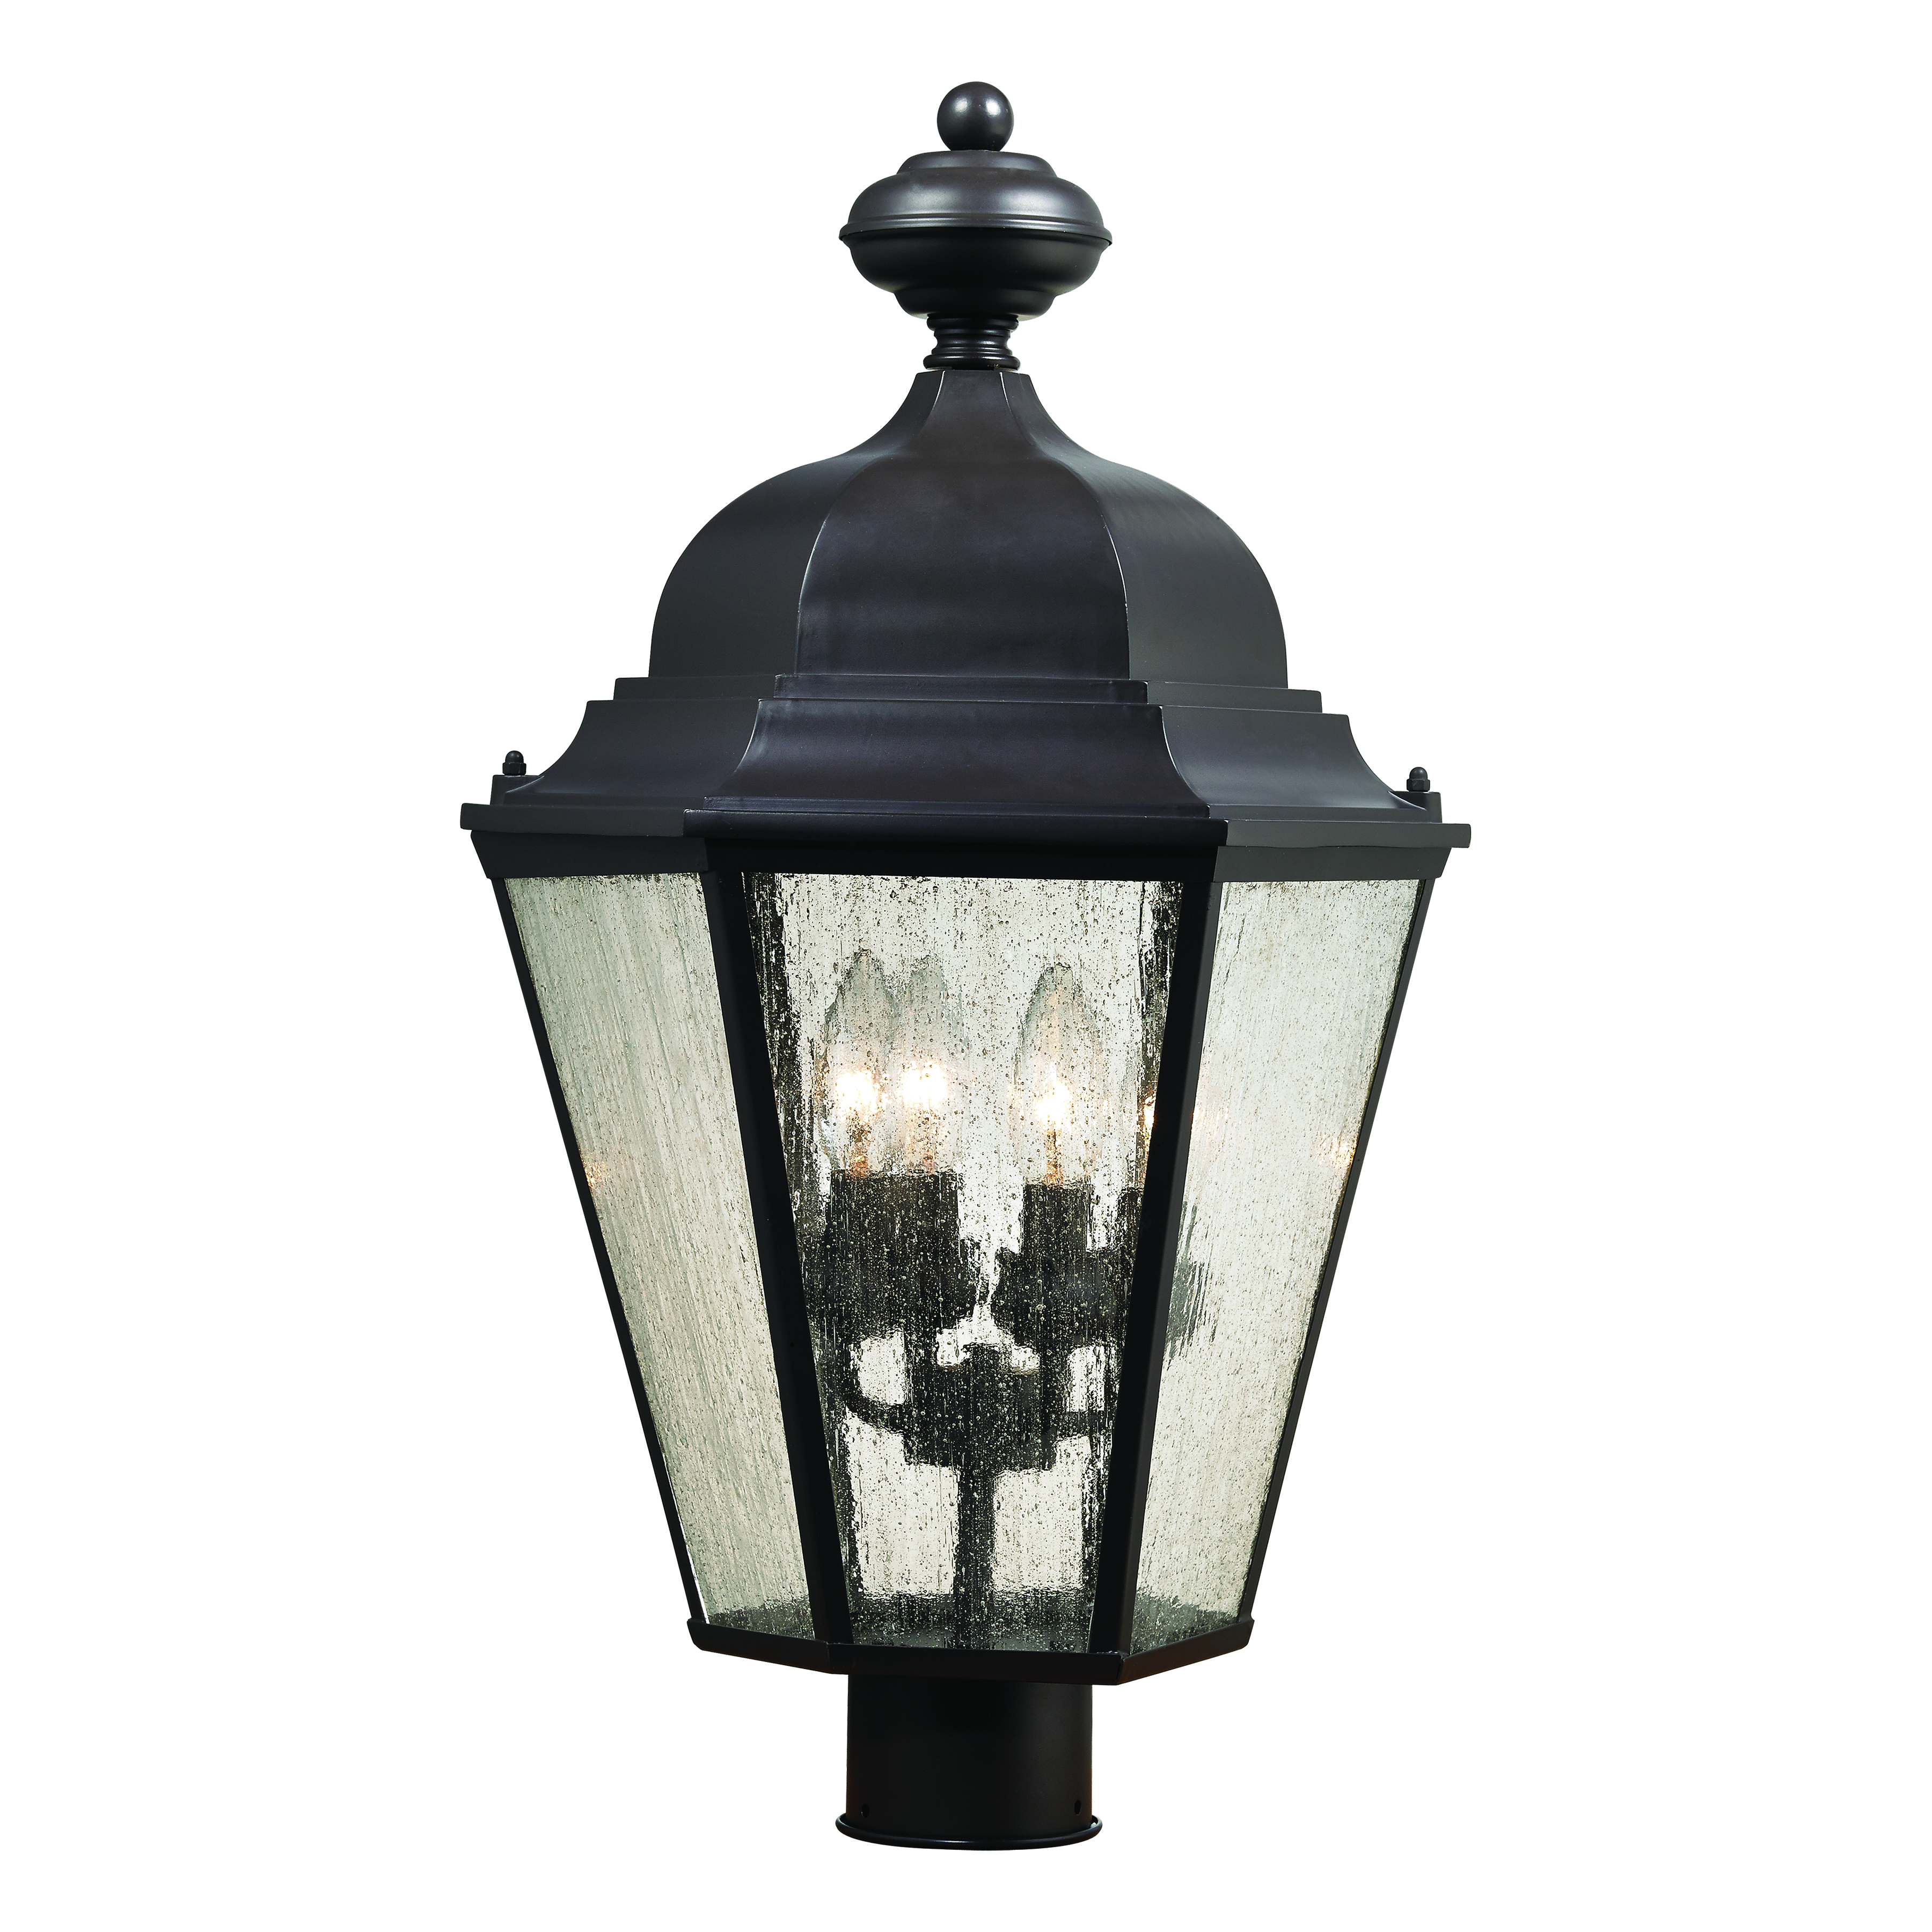 Cotswold 4-Light Post Mount Lantern 8903EP/75 | Thomas Lighting